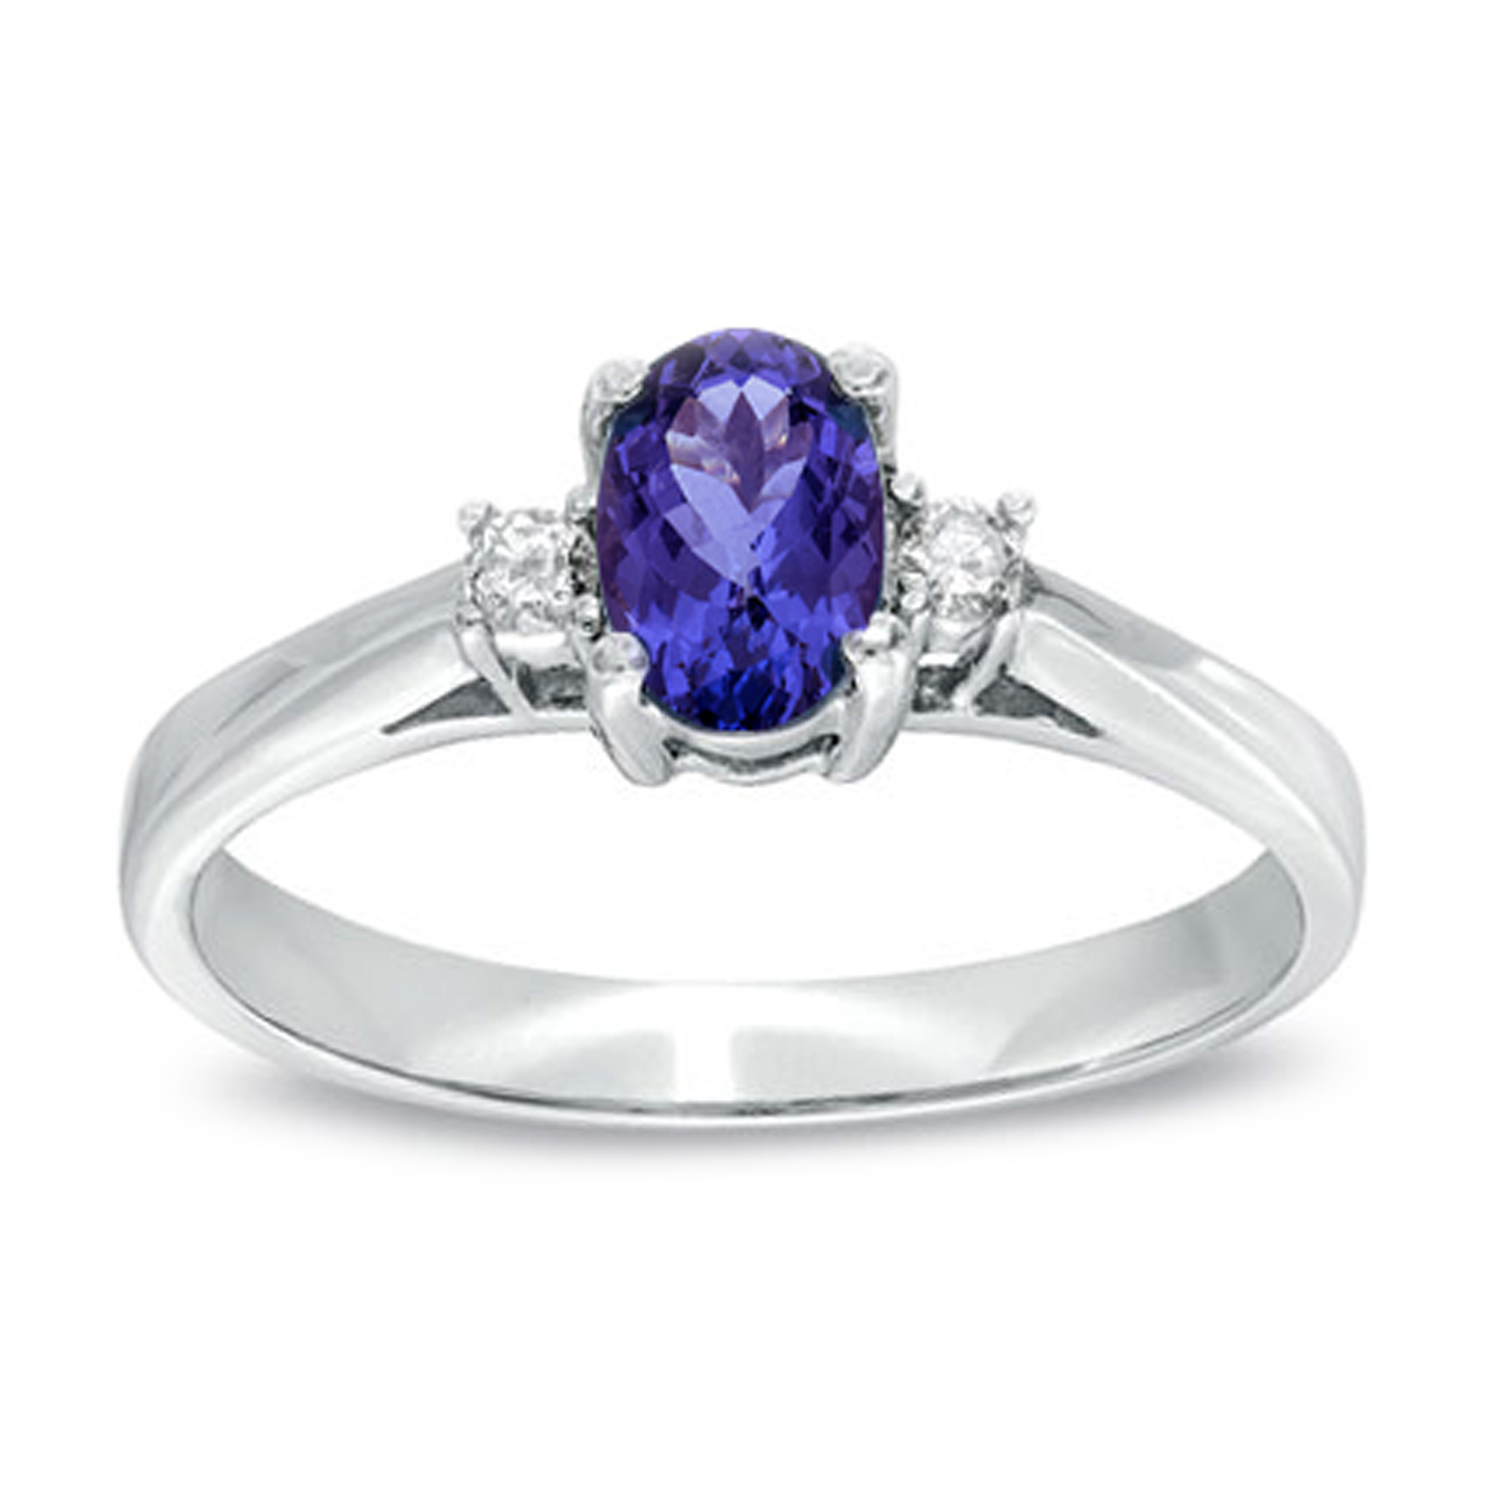 View 0.53cttw Tanzanite and Diamond Ring set in 14k Gold